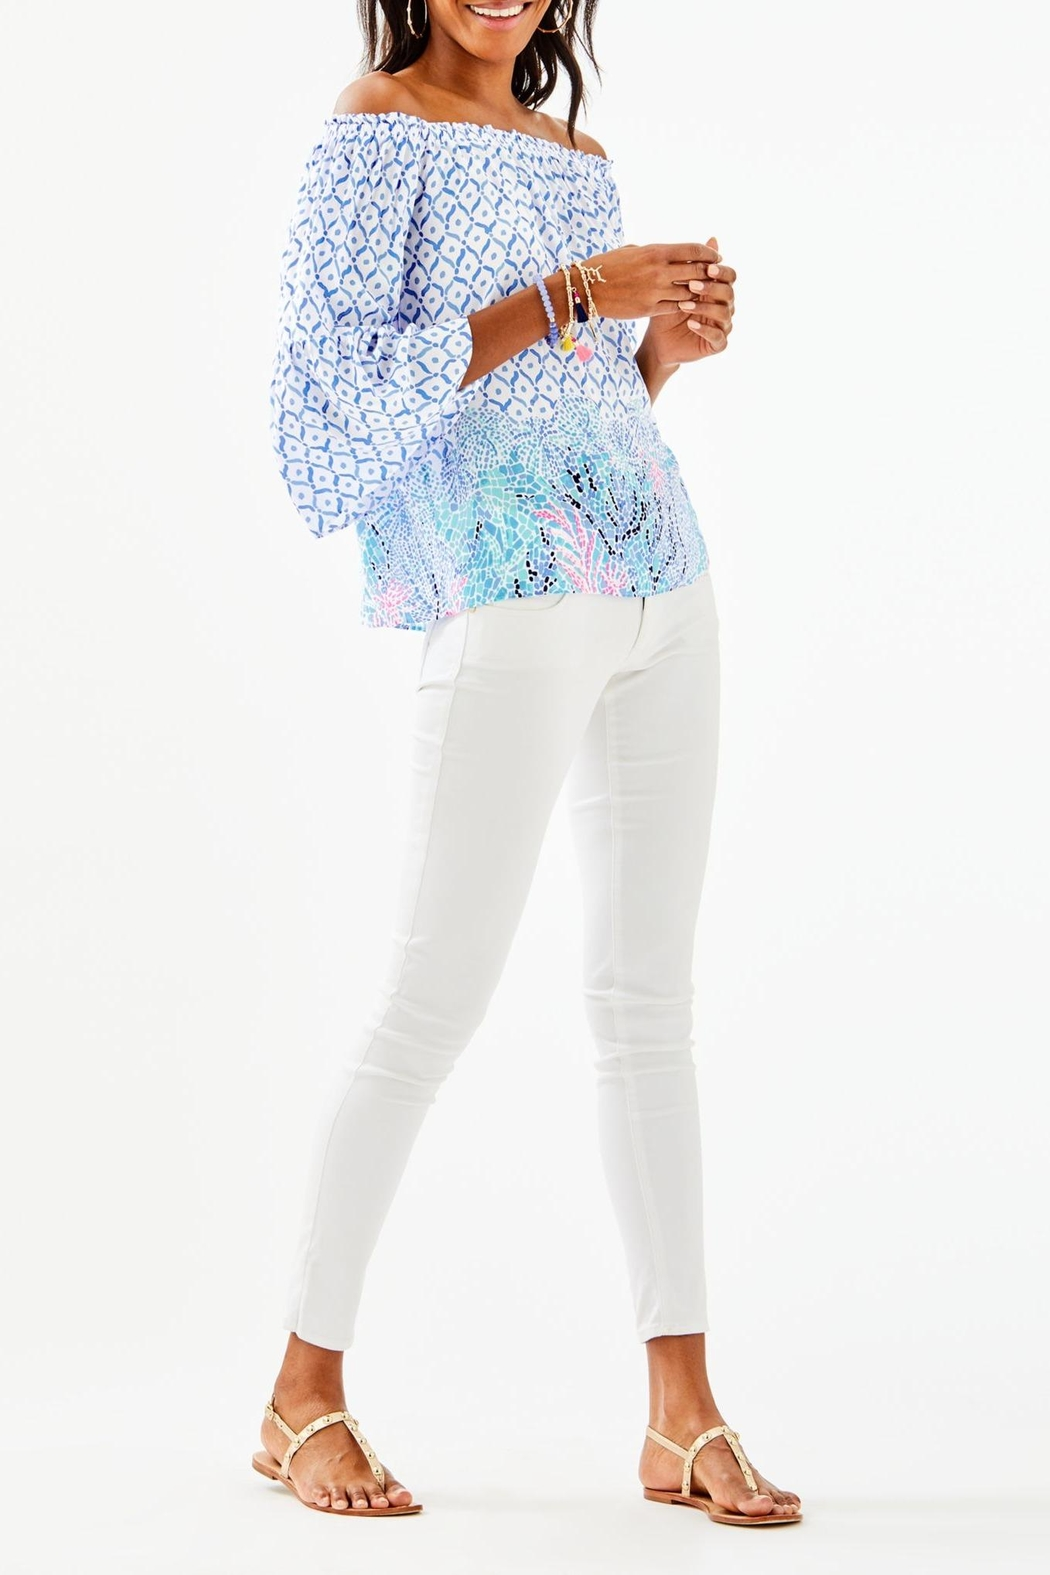 Lilly Pulitzer Nevie Top - Side Cropped Image